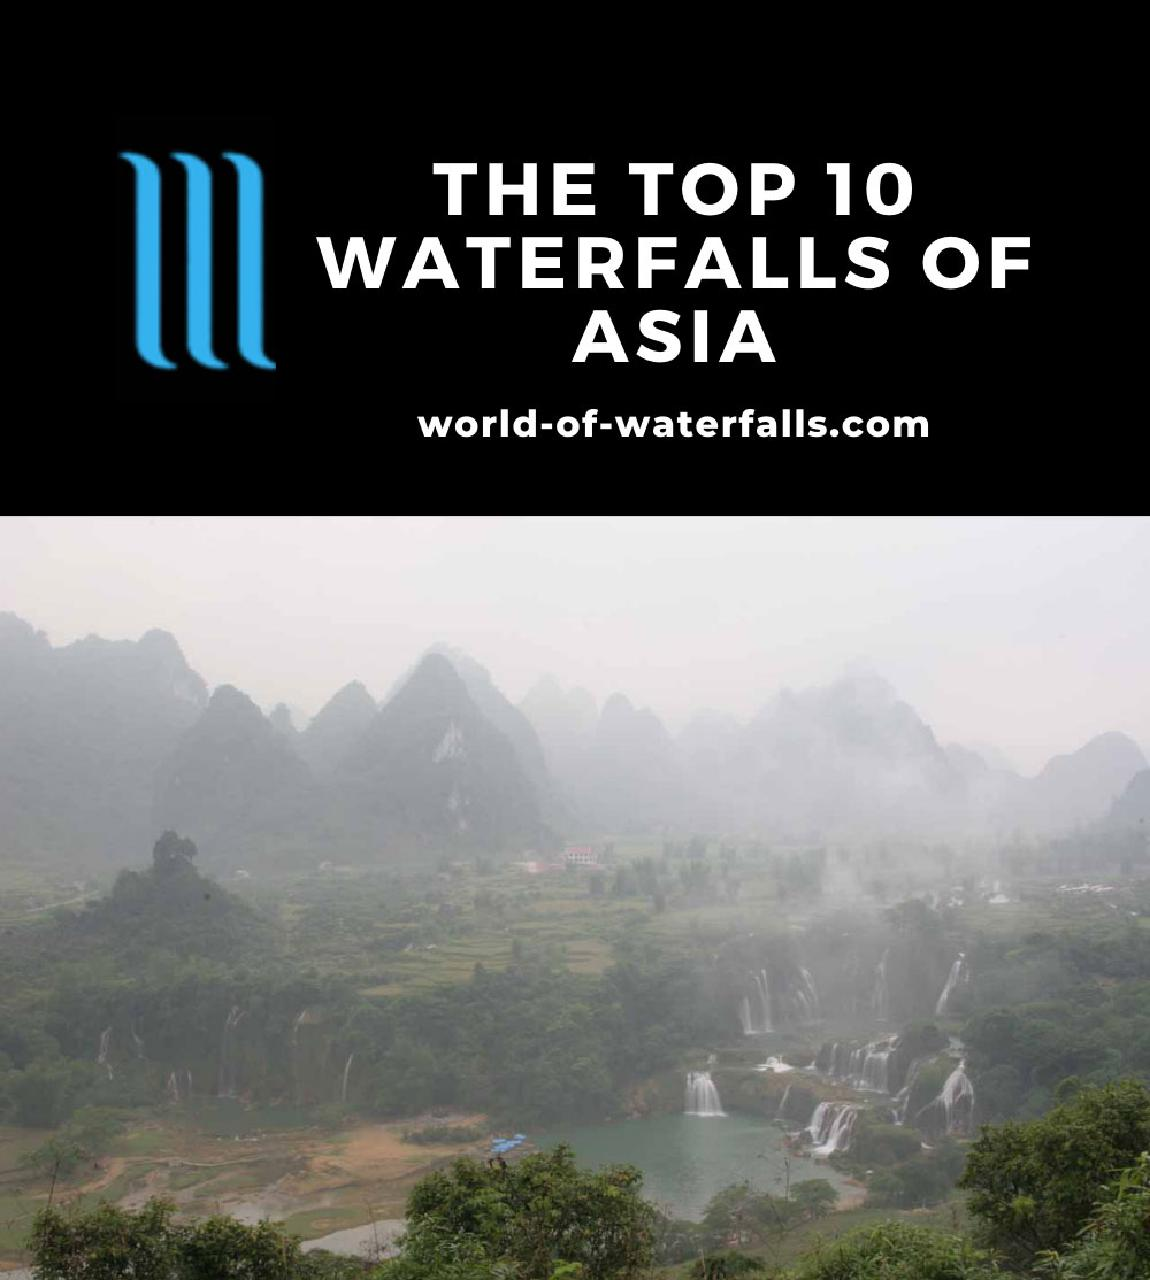 The Top 10 Waterfalls of Asia